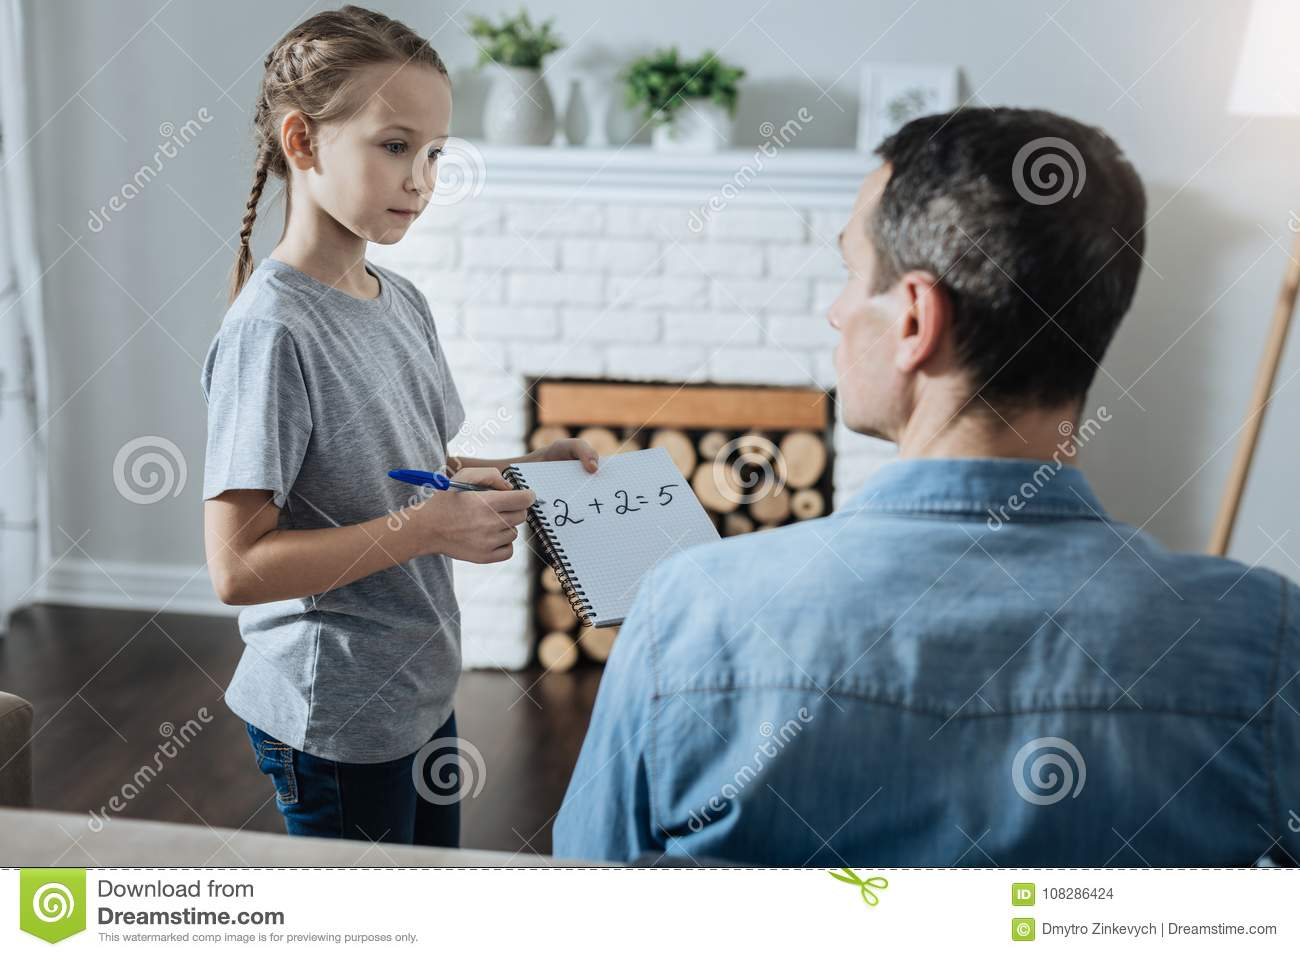 Lovely Girl Asking Her Day Help Her With Math Stock Photo - Image of ...